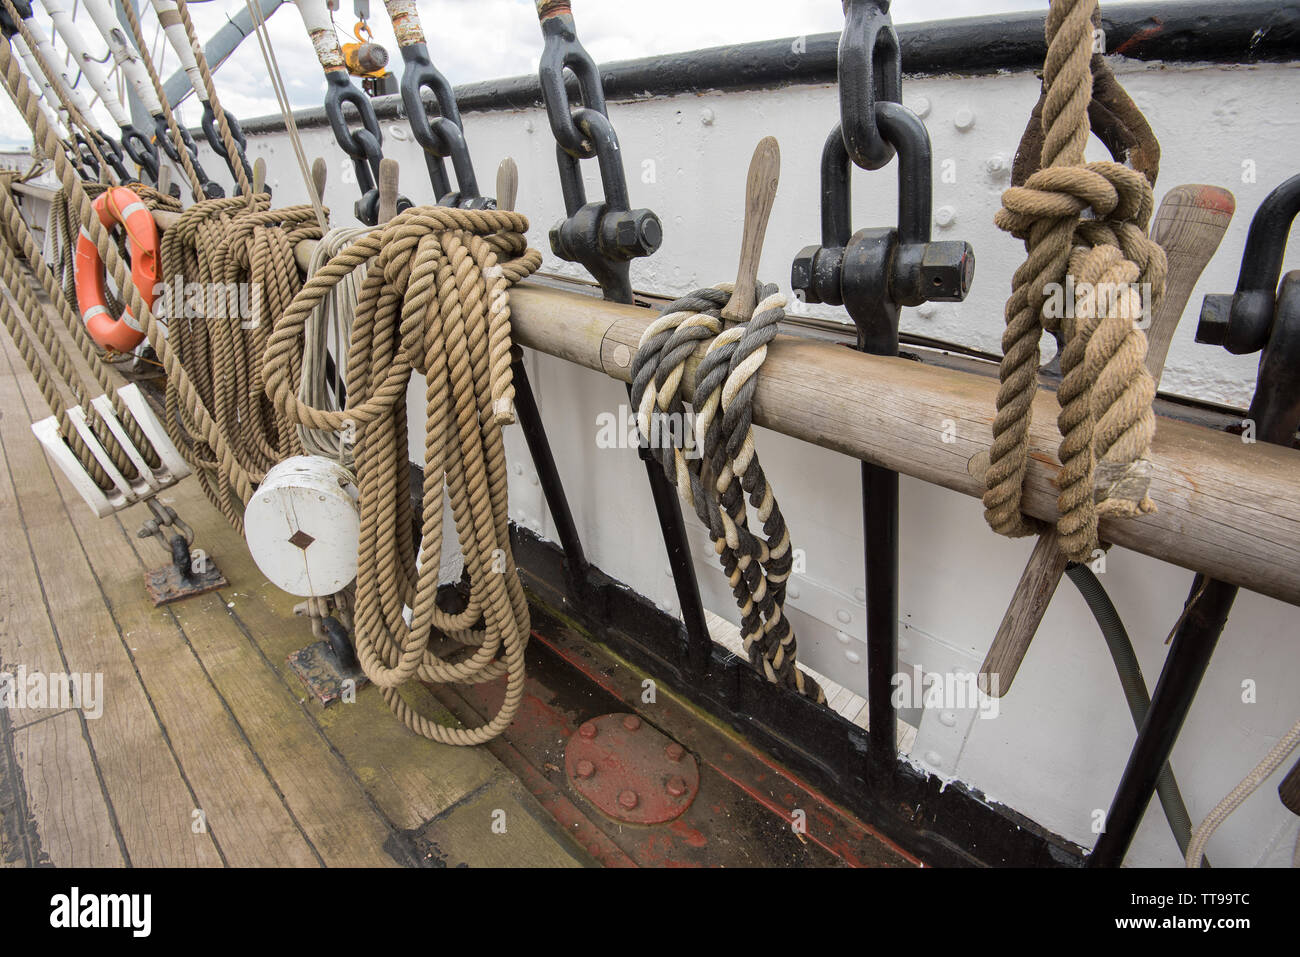 The principal exhibit, the Tall Ship. at Riverside Museum - Stock Image